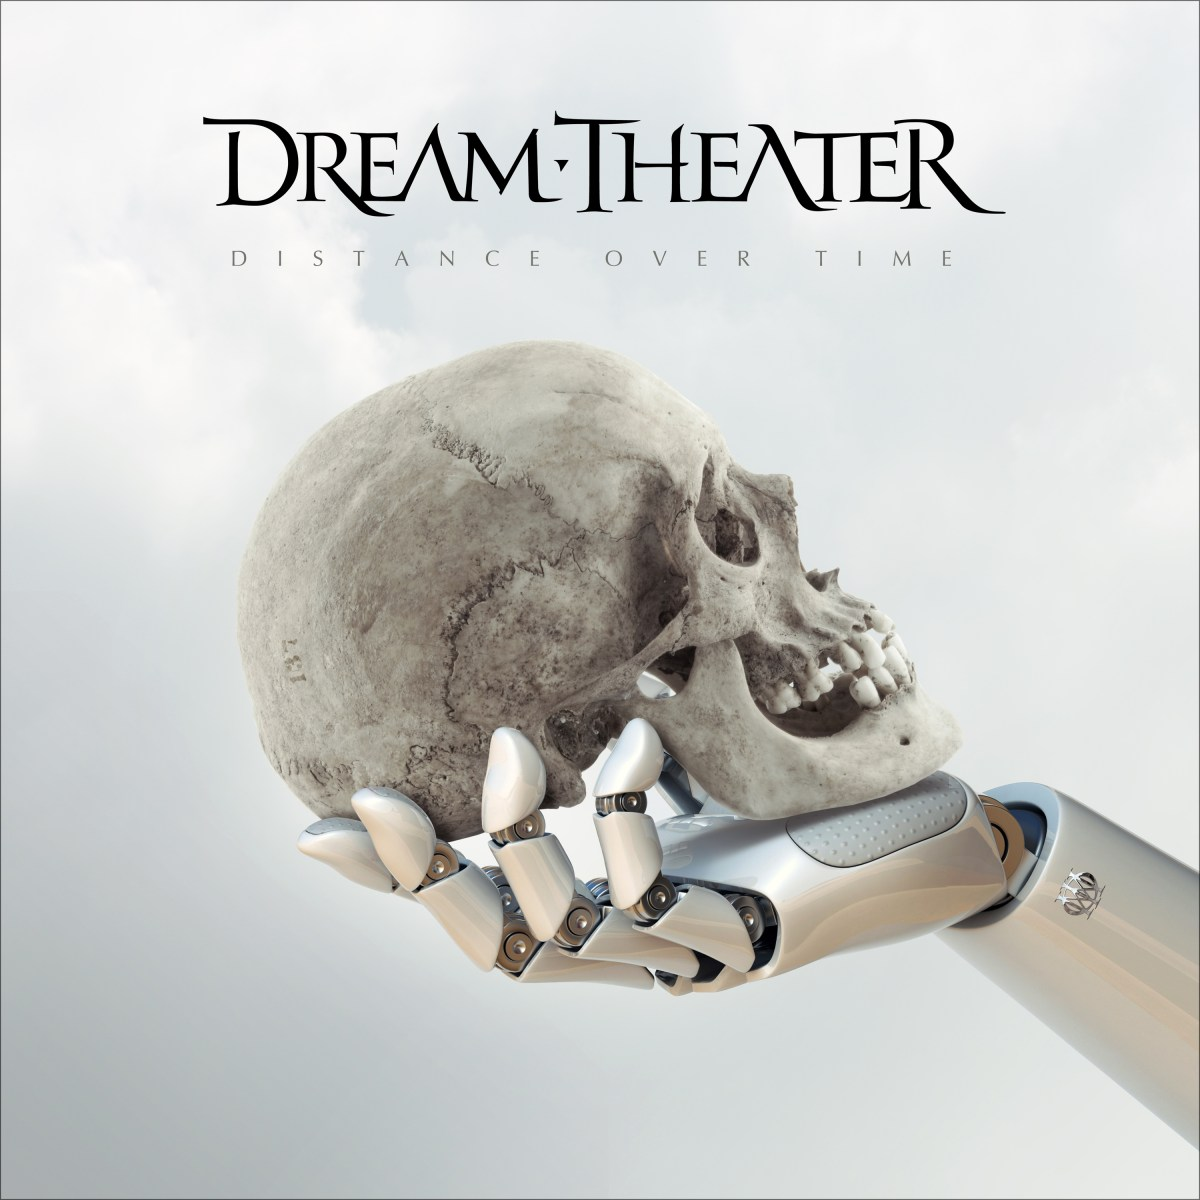 Dream Theater - Distance Over Time (Album Review)